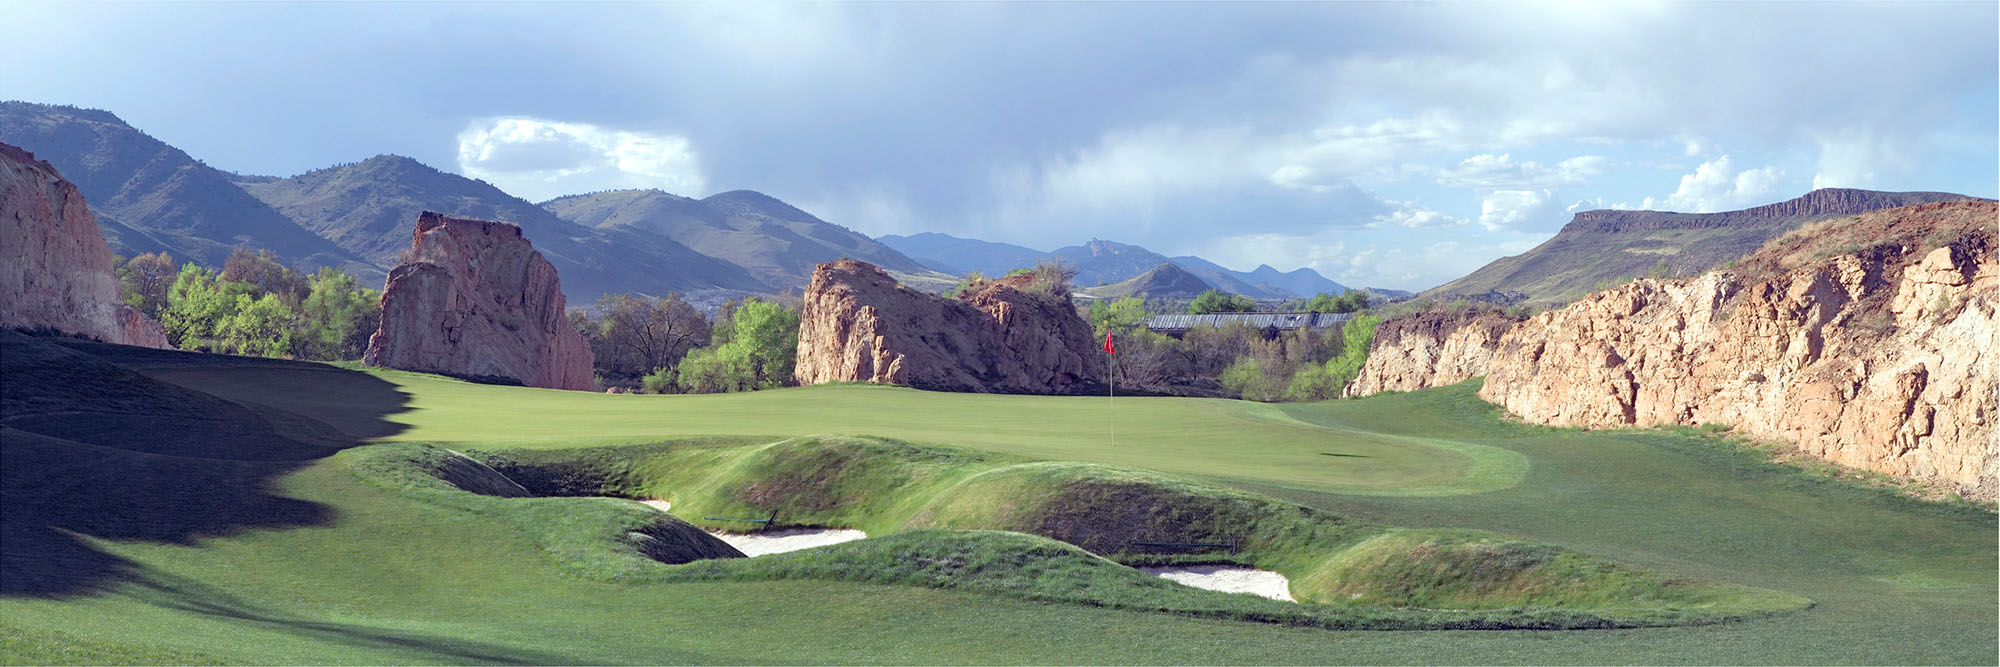 Golf Course Image - Fossil Trace No. 12